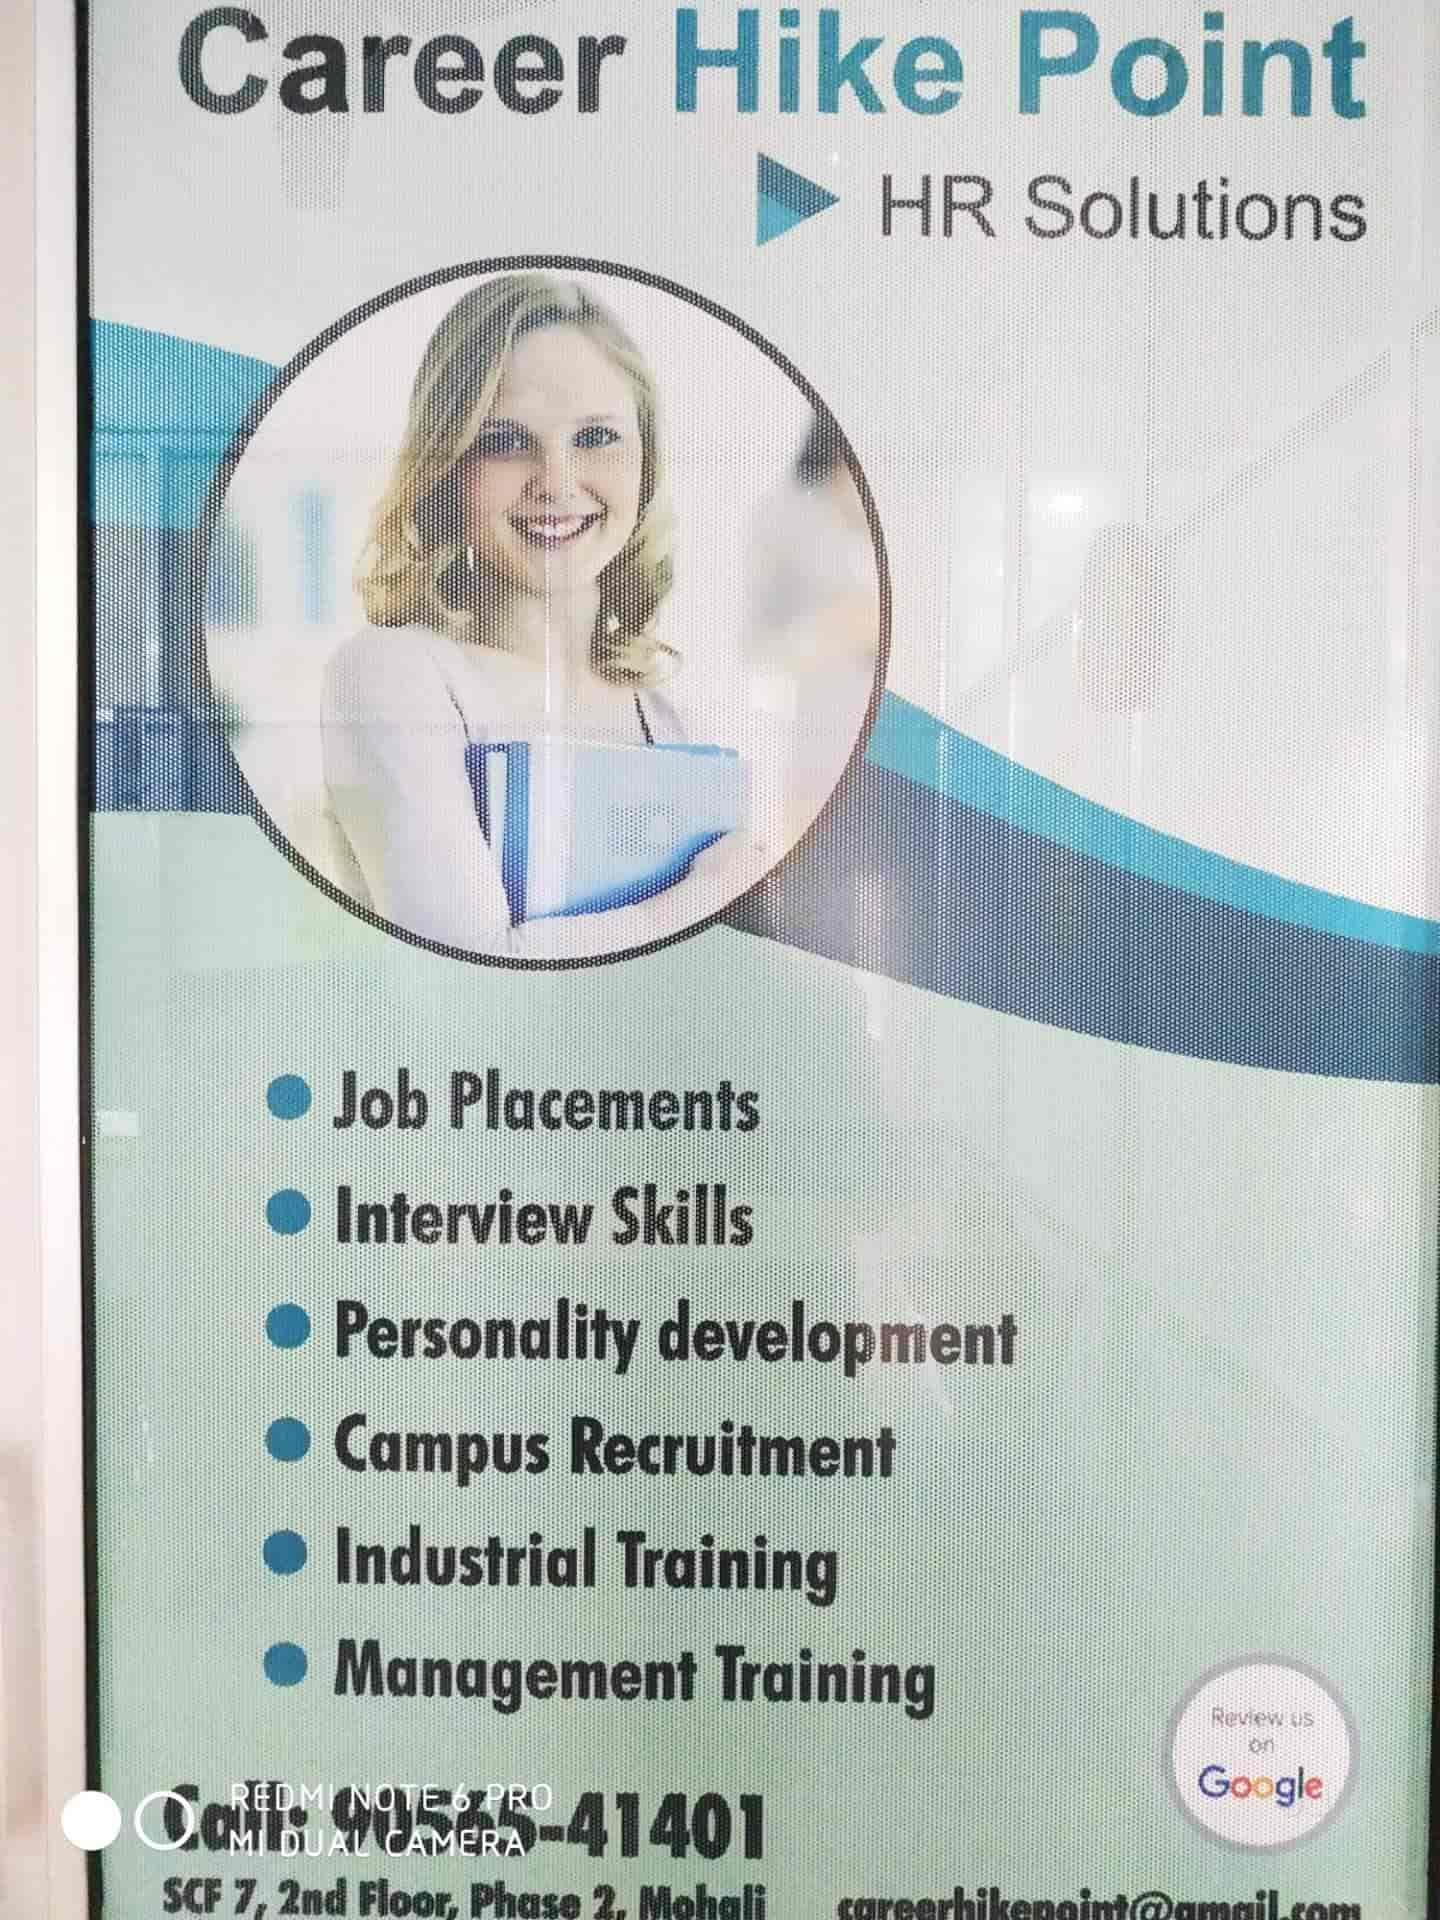 Career Hike Point, Sector 54 Phase 2 - Placement Services